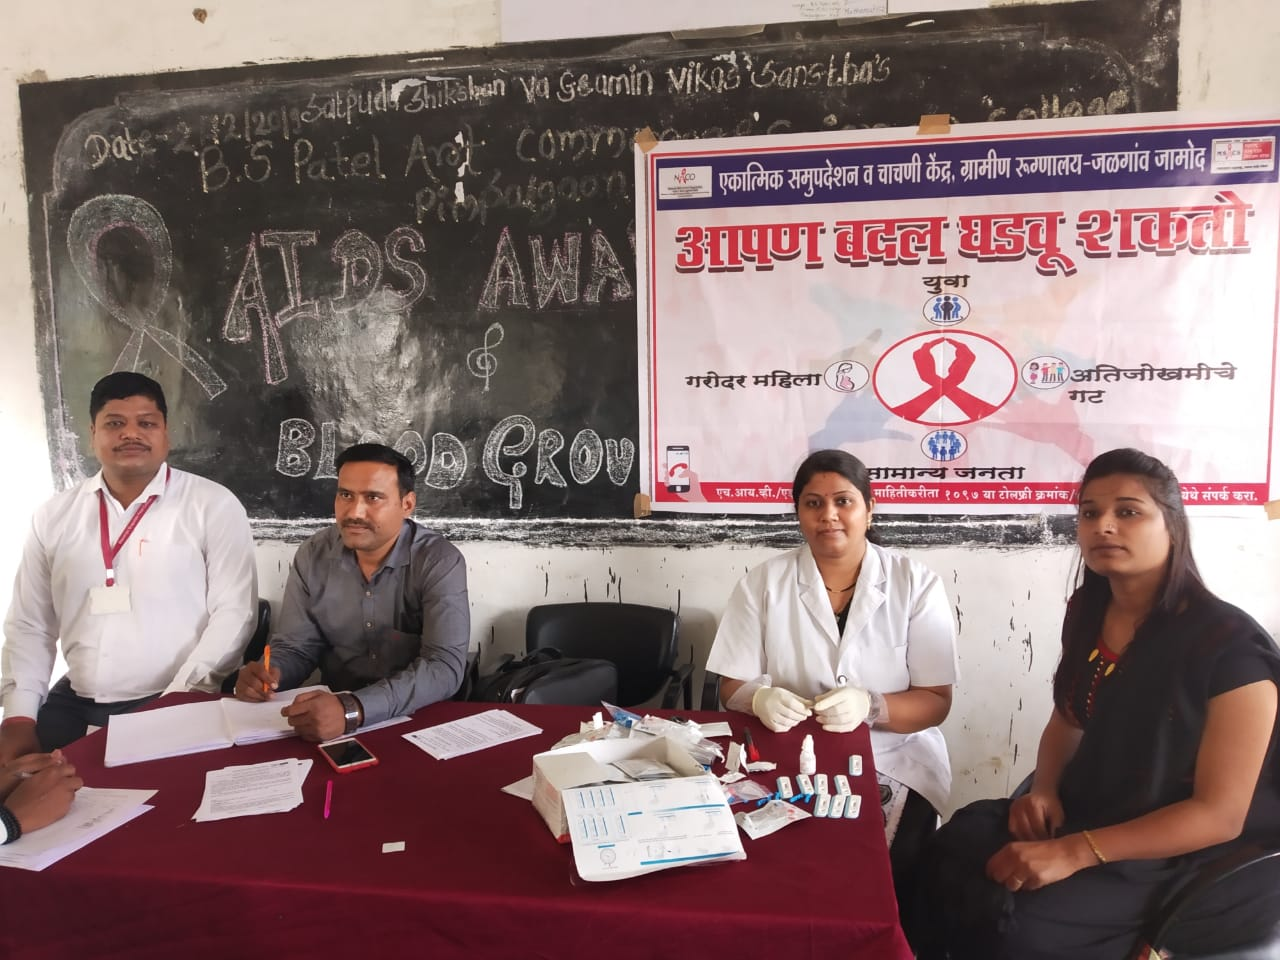 HIV testing camp organized by department of microbiology and zoology.